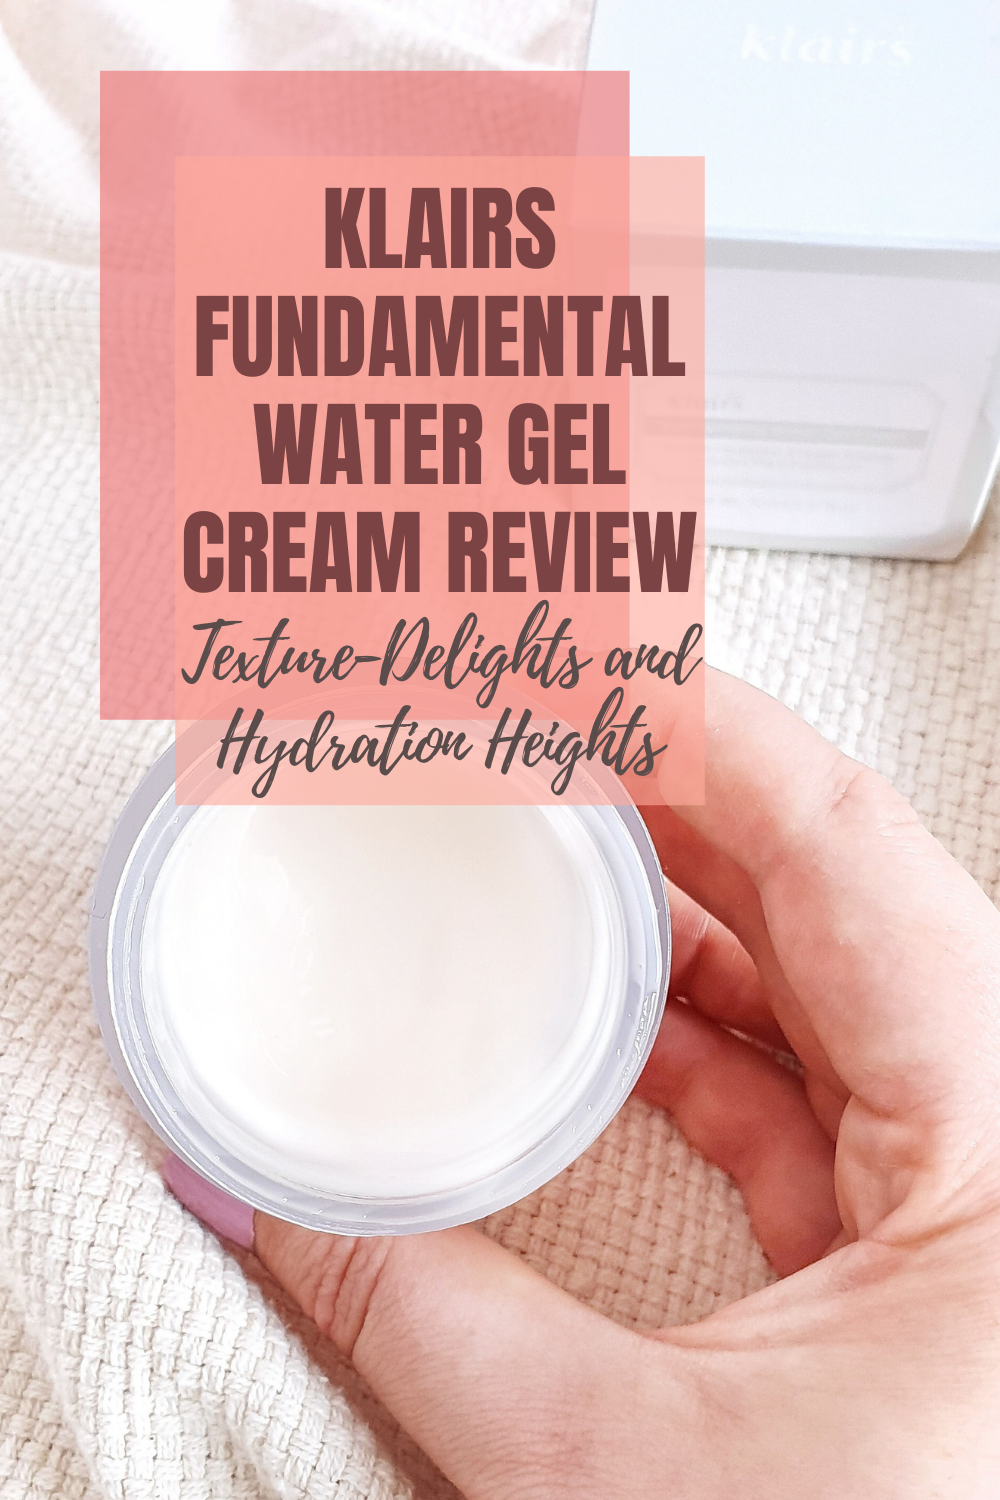 Klairs Fundamental Water Gel Cream Review - Texture Delights and Hydration Heights!